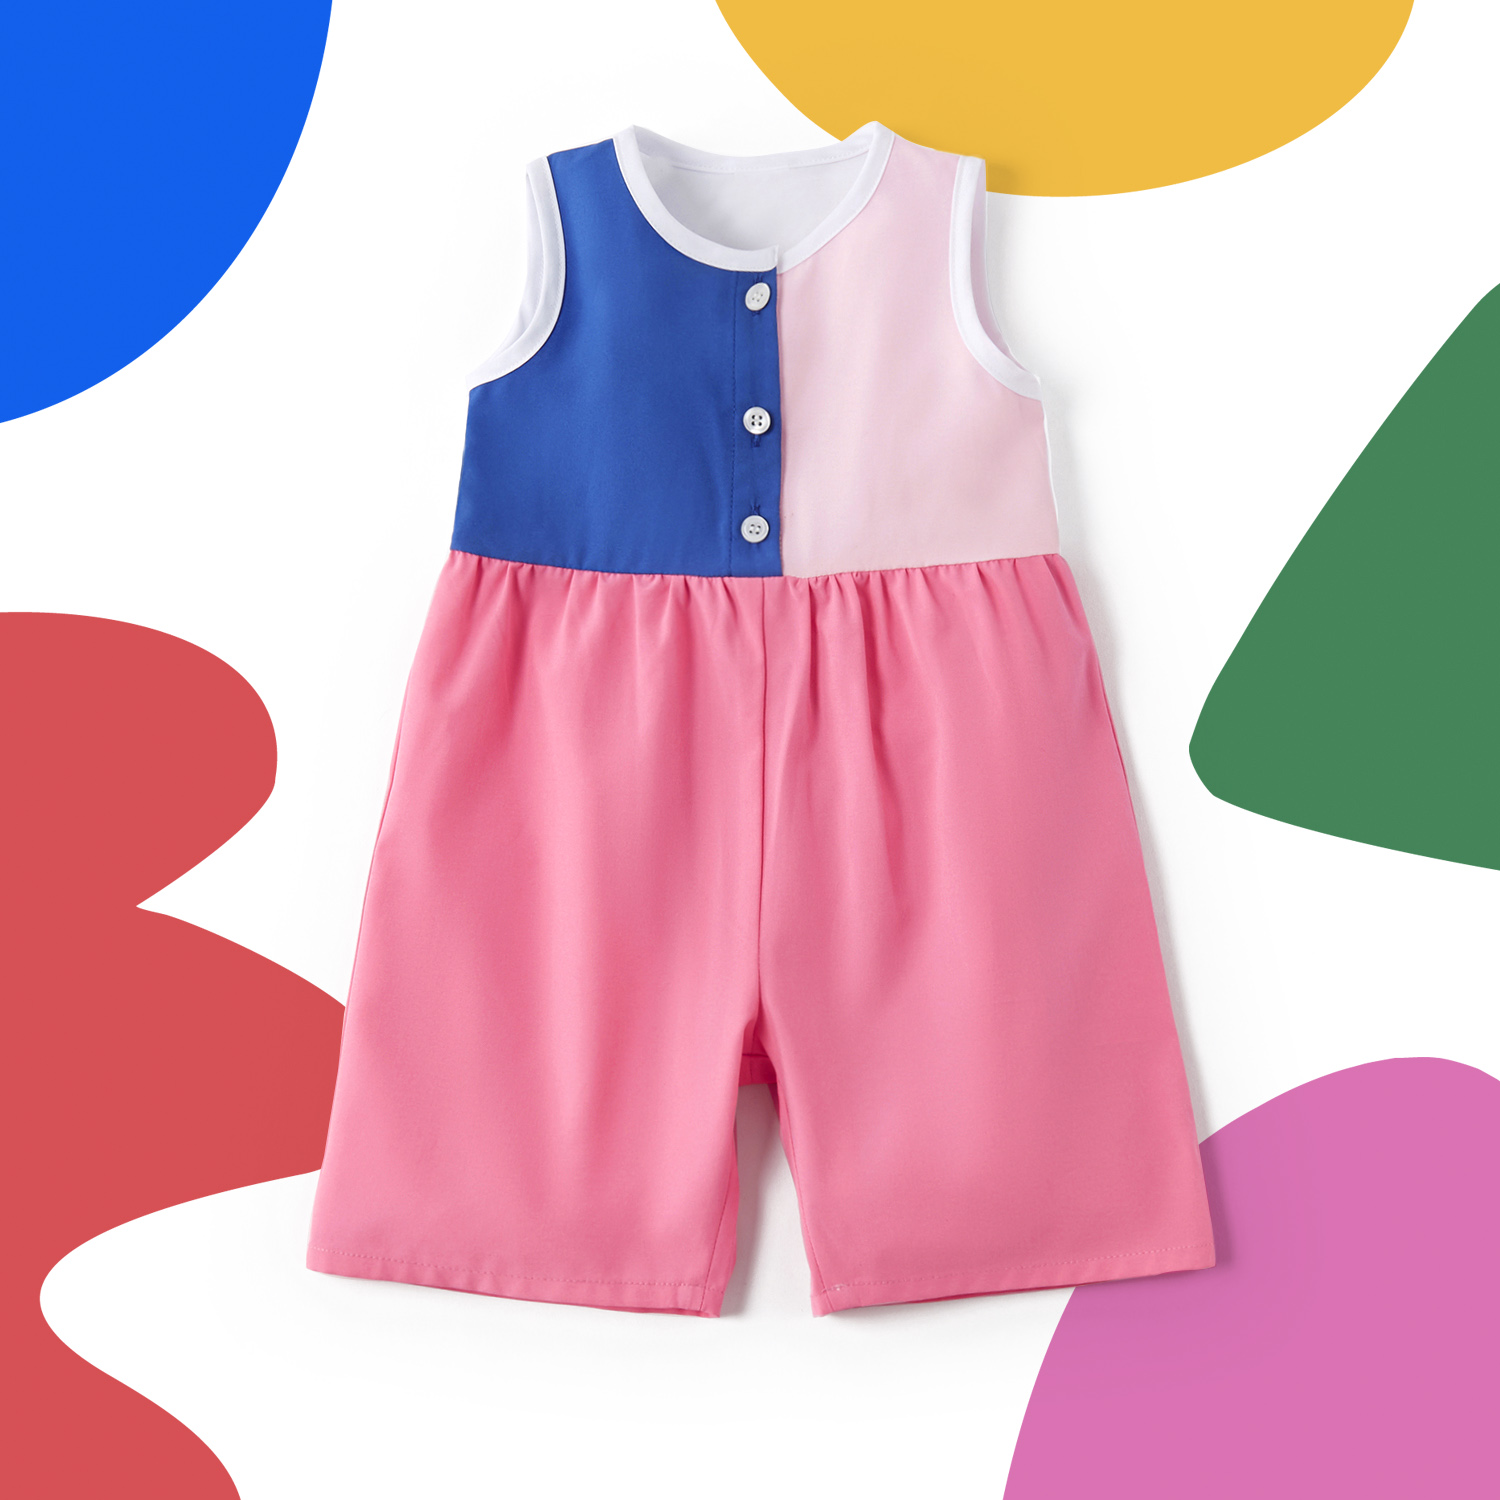 Baby & Toddler Outfits